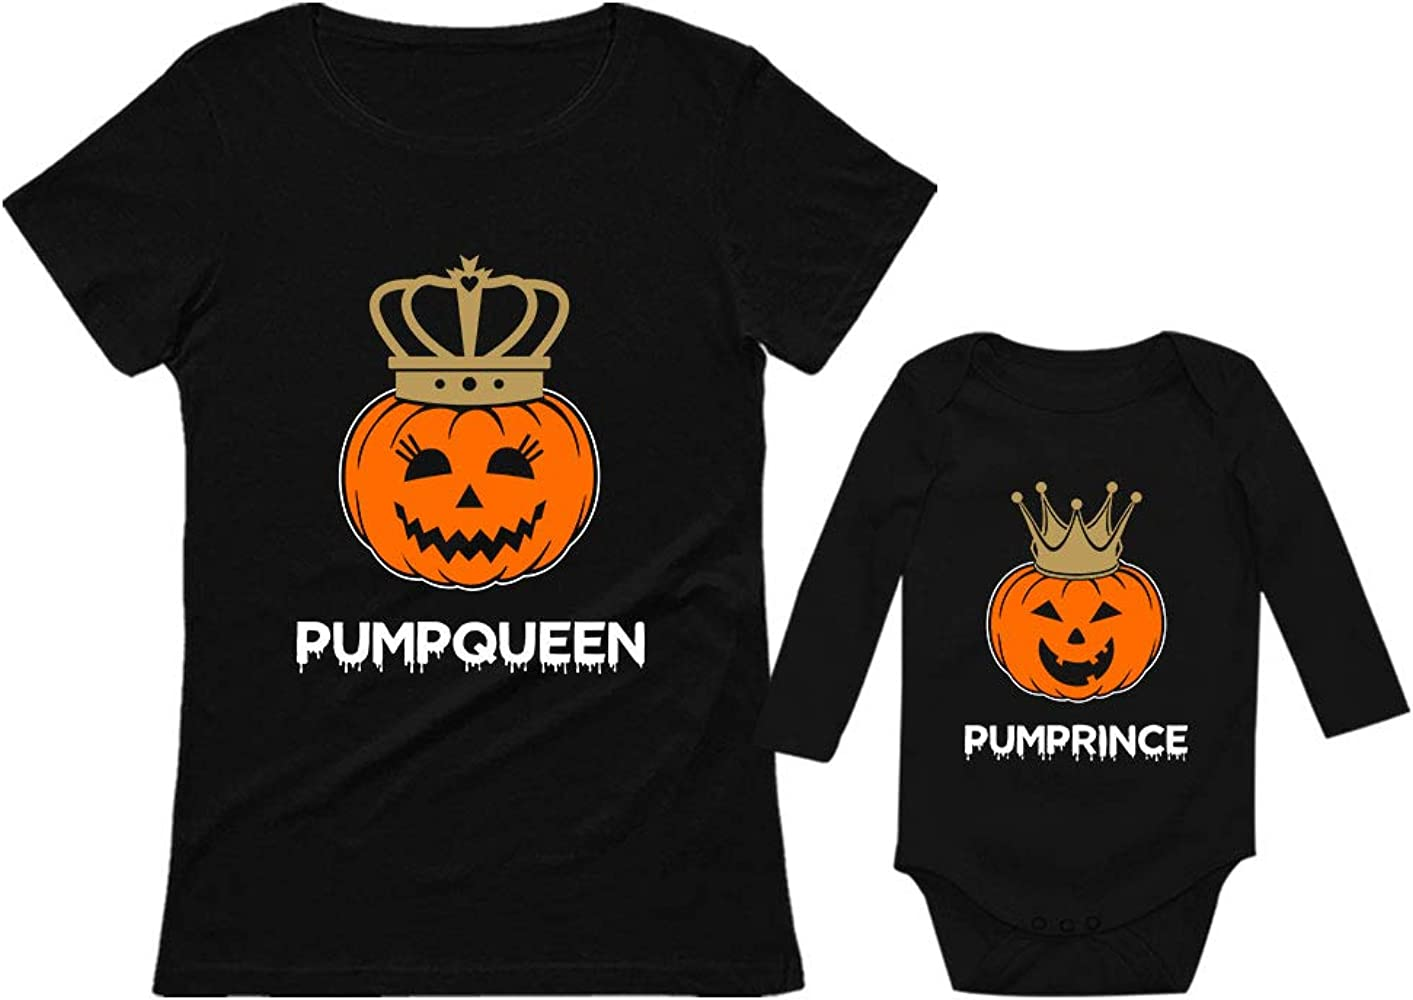 Mom And Baby Boy Matching Halloween Costumes.Amazon Com Halloween Pumpqueen Pumpprince Mom Son Shirts